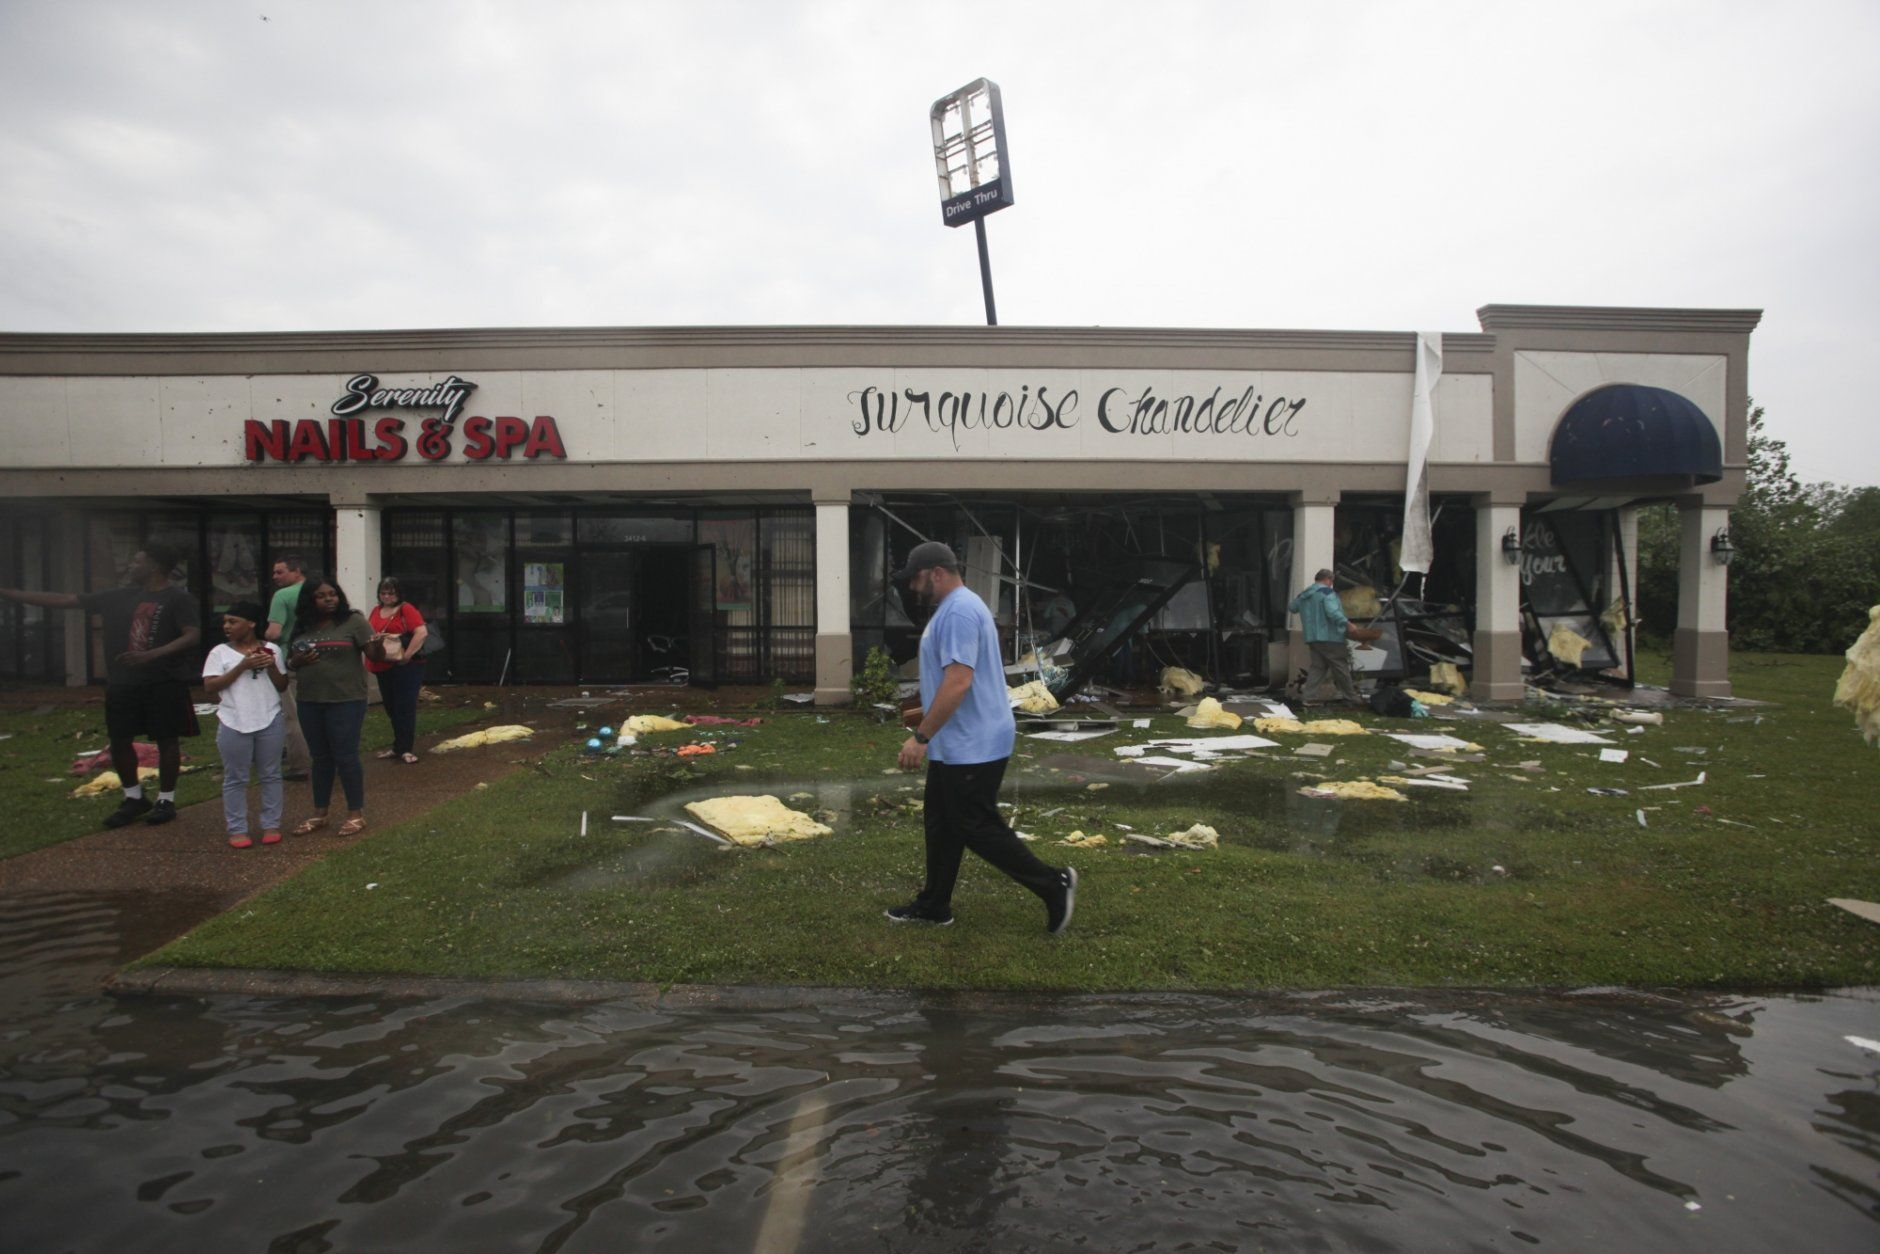 Shop owners and workers stand outside of their shops and walk through debris in the Pemberton Quarters strip mall following severe weather Saturday, April 13, 2019 in Vicksburg, Miss. Authorities say a possible tornado has touched down in western Mississippi, causing damage to several businesses and vehicles. John Moore, a forecaster with the National Weather Service in Jackson, says a twister was reported Saturday in the Vicksburg area of Mississippi and was indicated on radar. (Courtland Wells/The Vicksburg Post via AP)